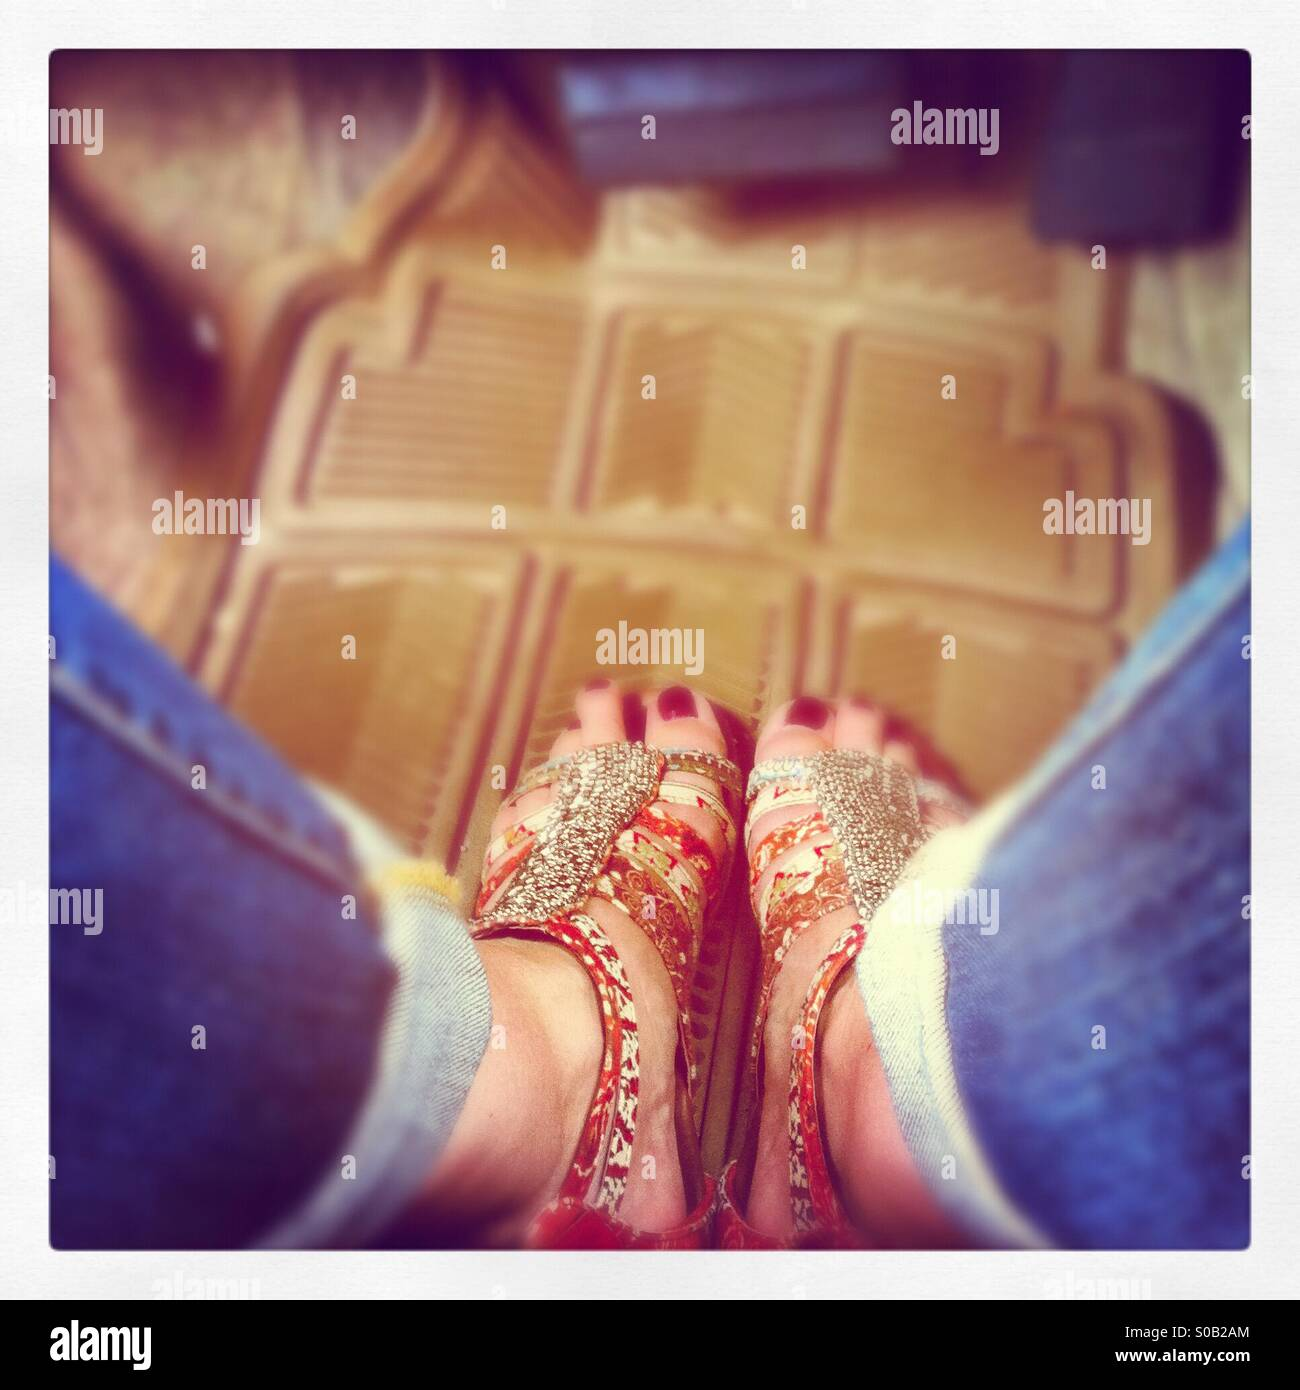 Looking down on blue jeans and painted red toes in ethnic beaded sandals on top of beige plastic Matt in a car. Stock Photo